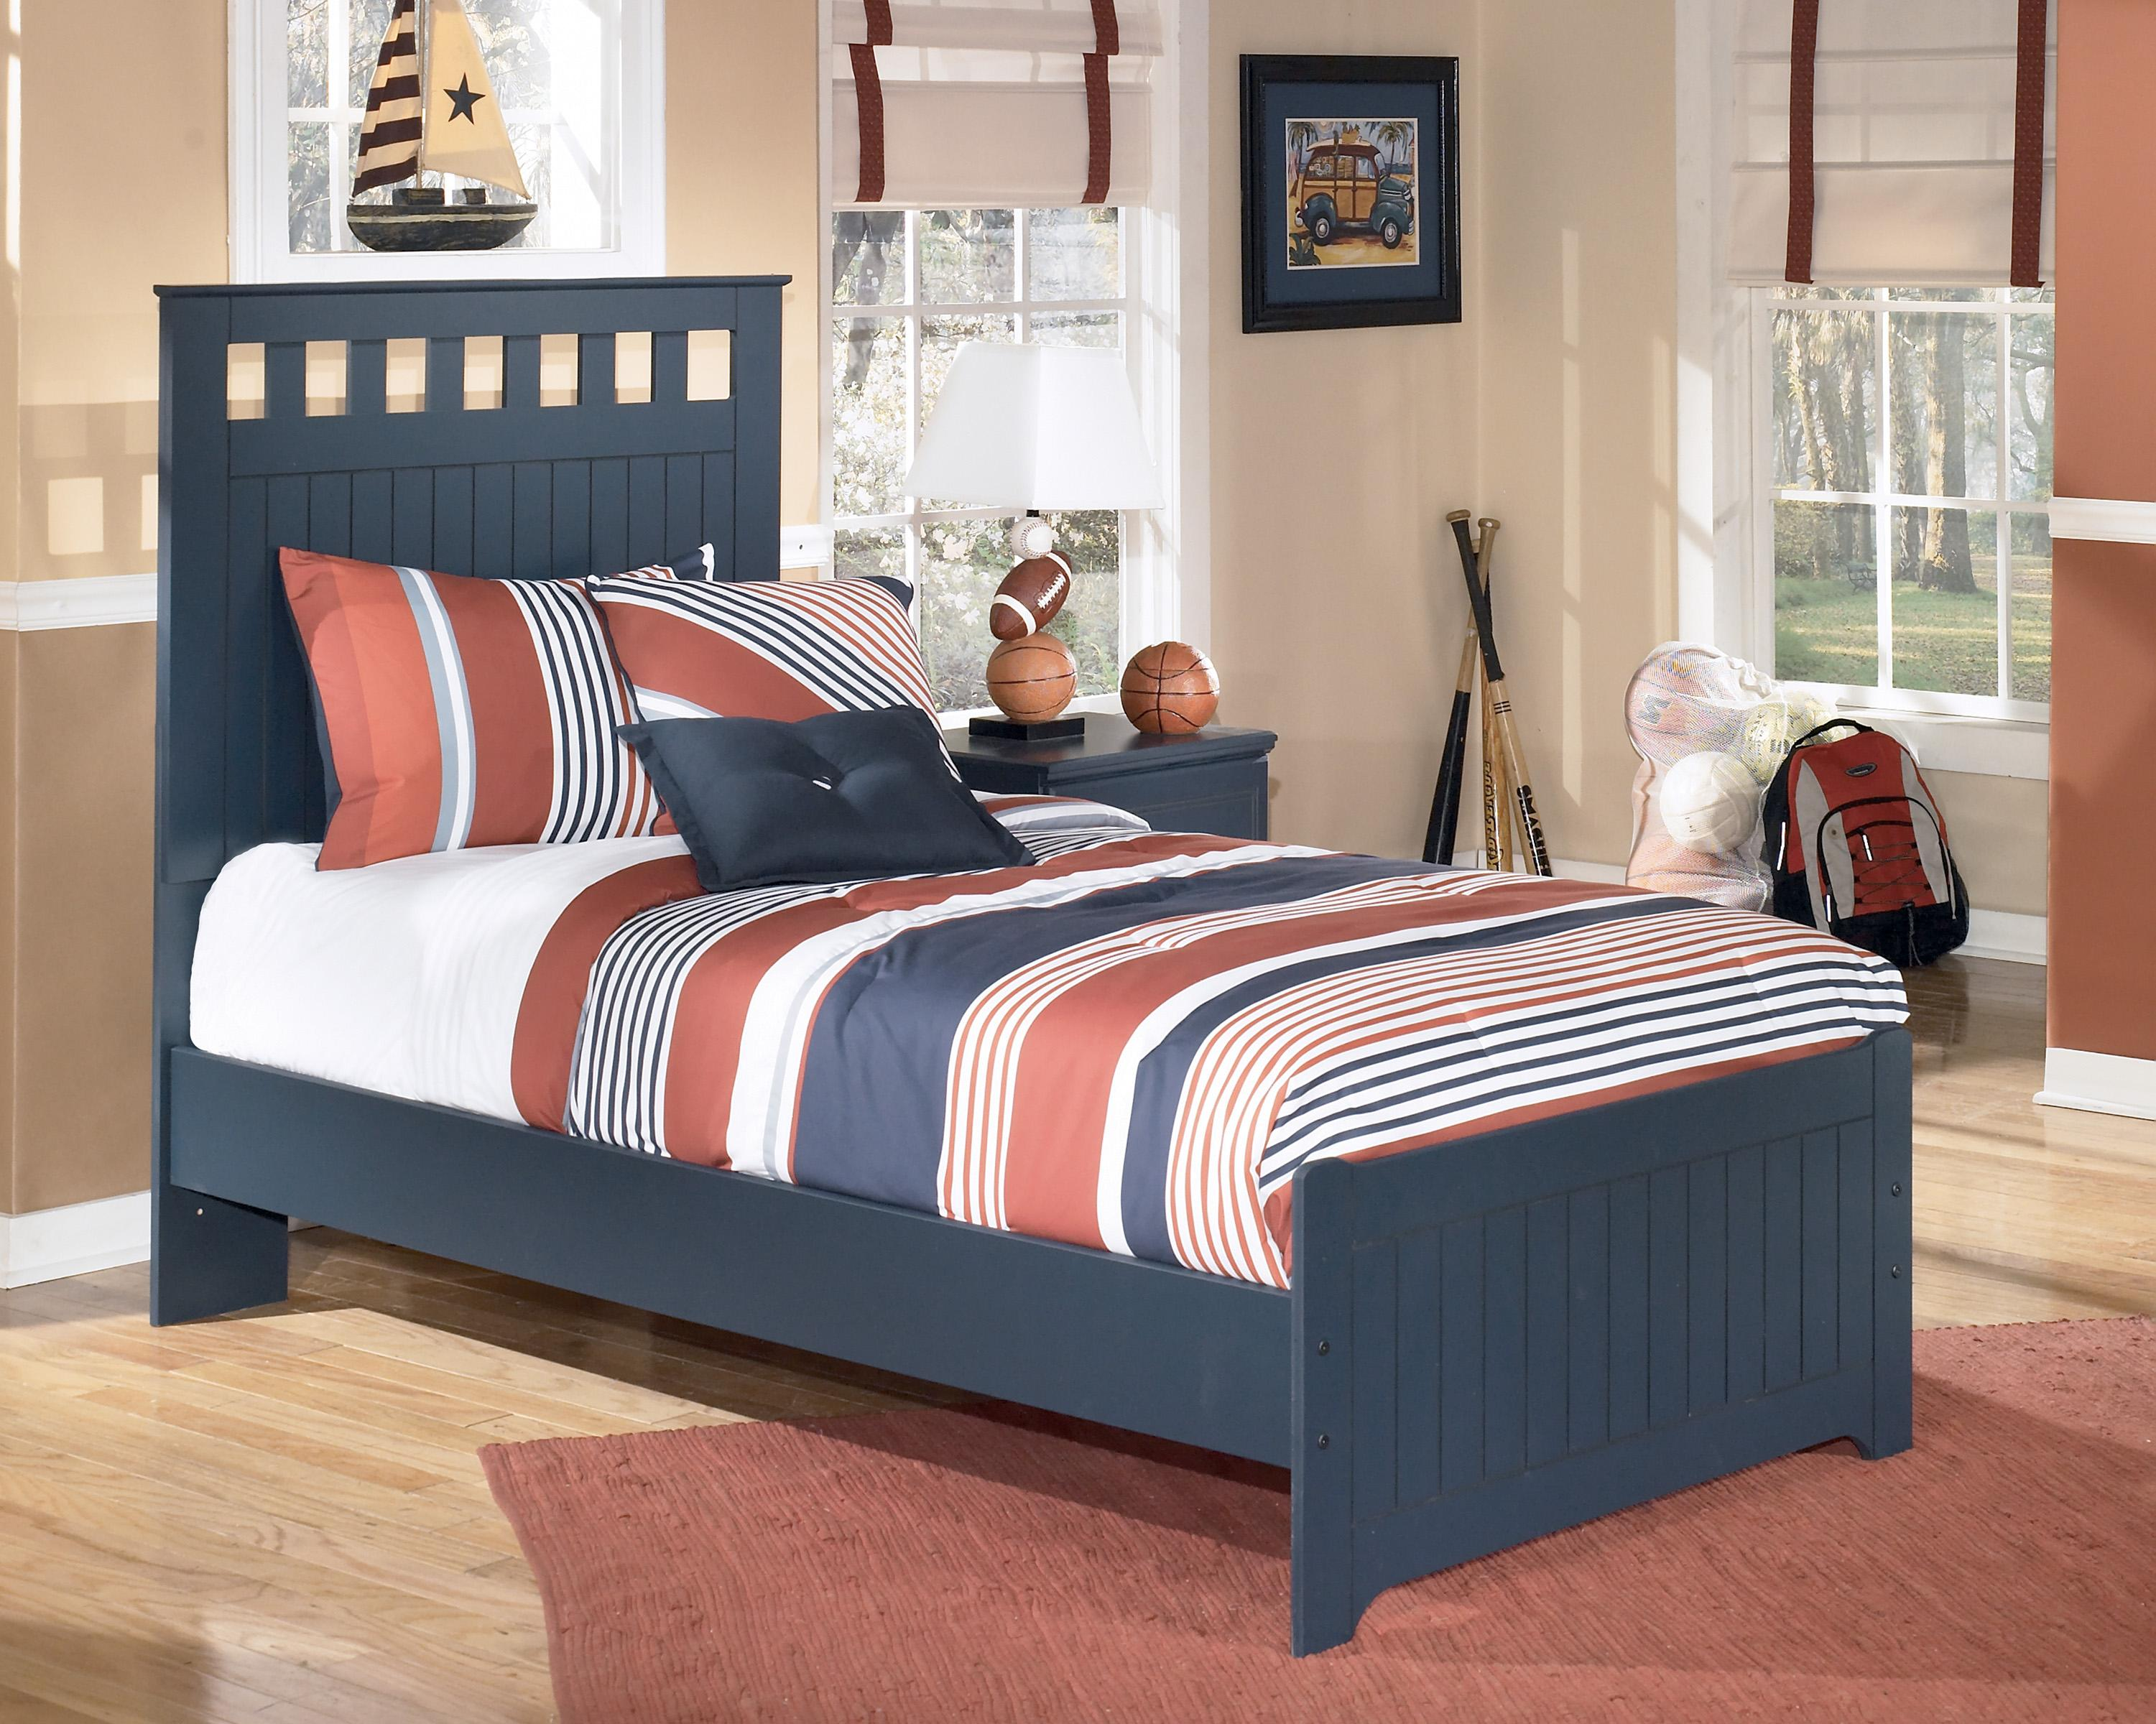 Twin Bed: Includes headboard, footboard, and rails